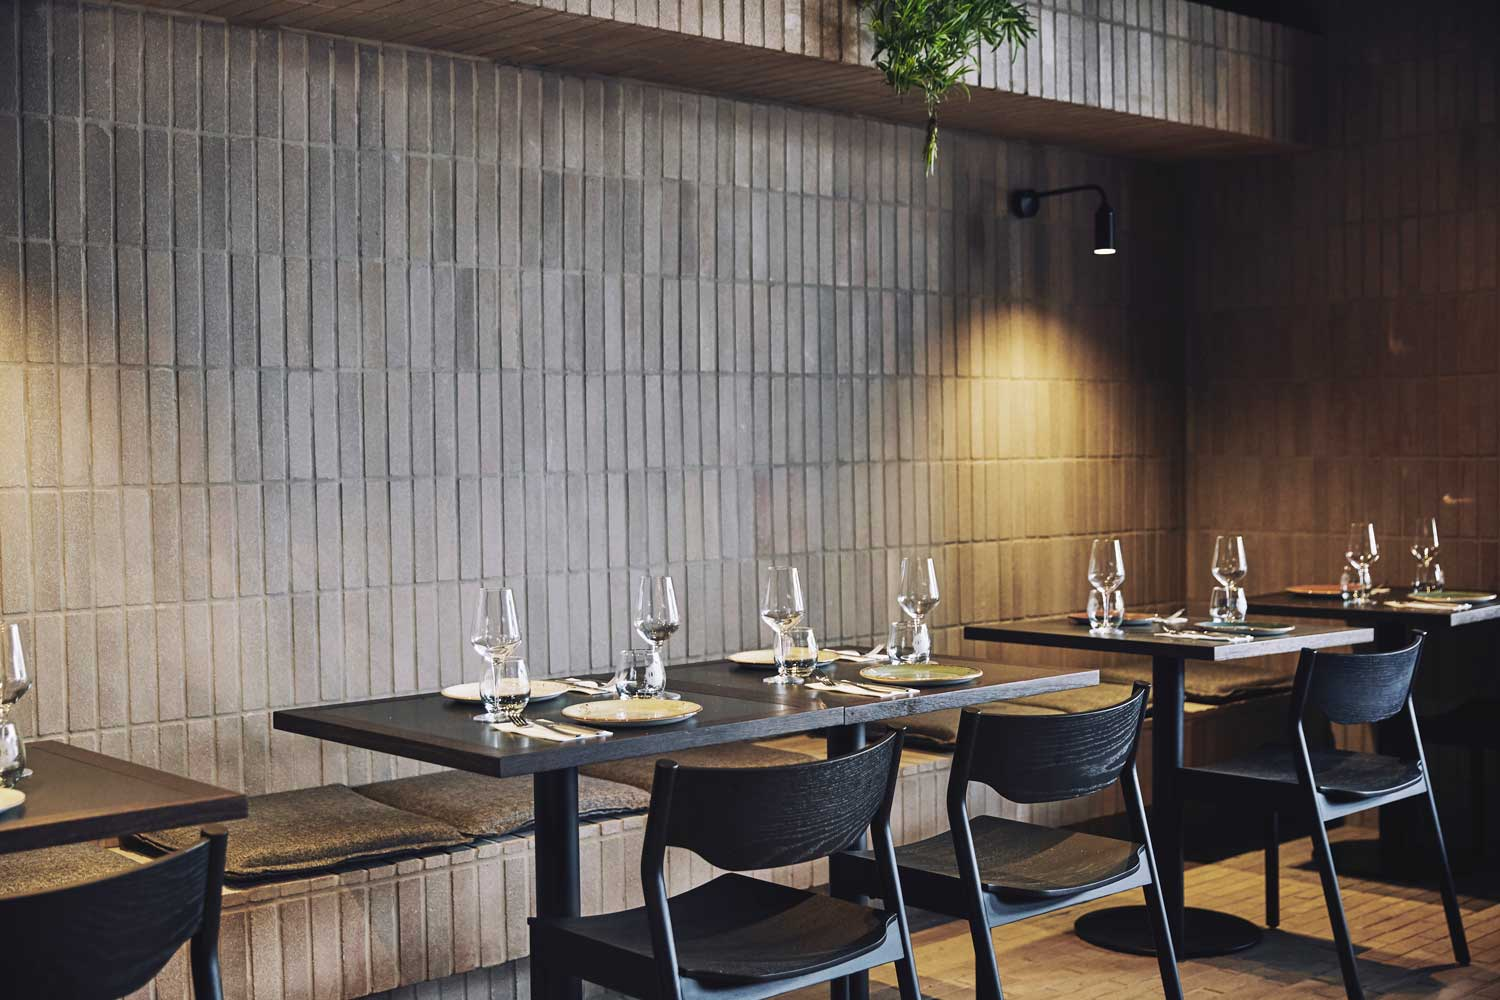 Antica Pizzeria E Cucina In Adelaide By Ryan Genesin | Yellowtrace